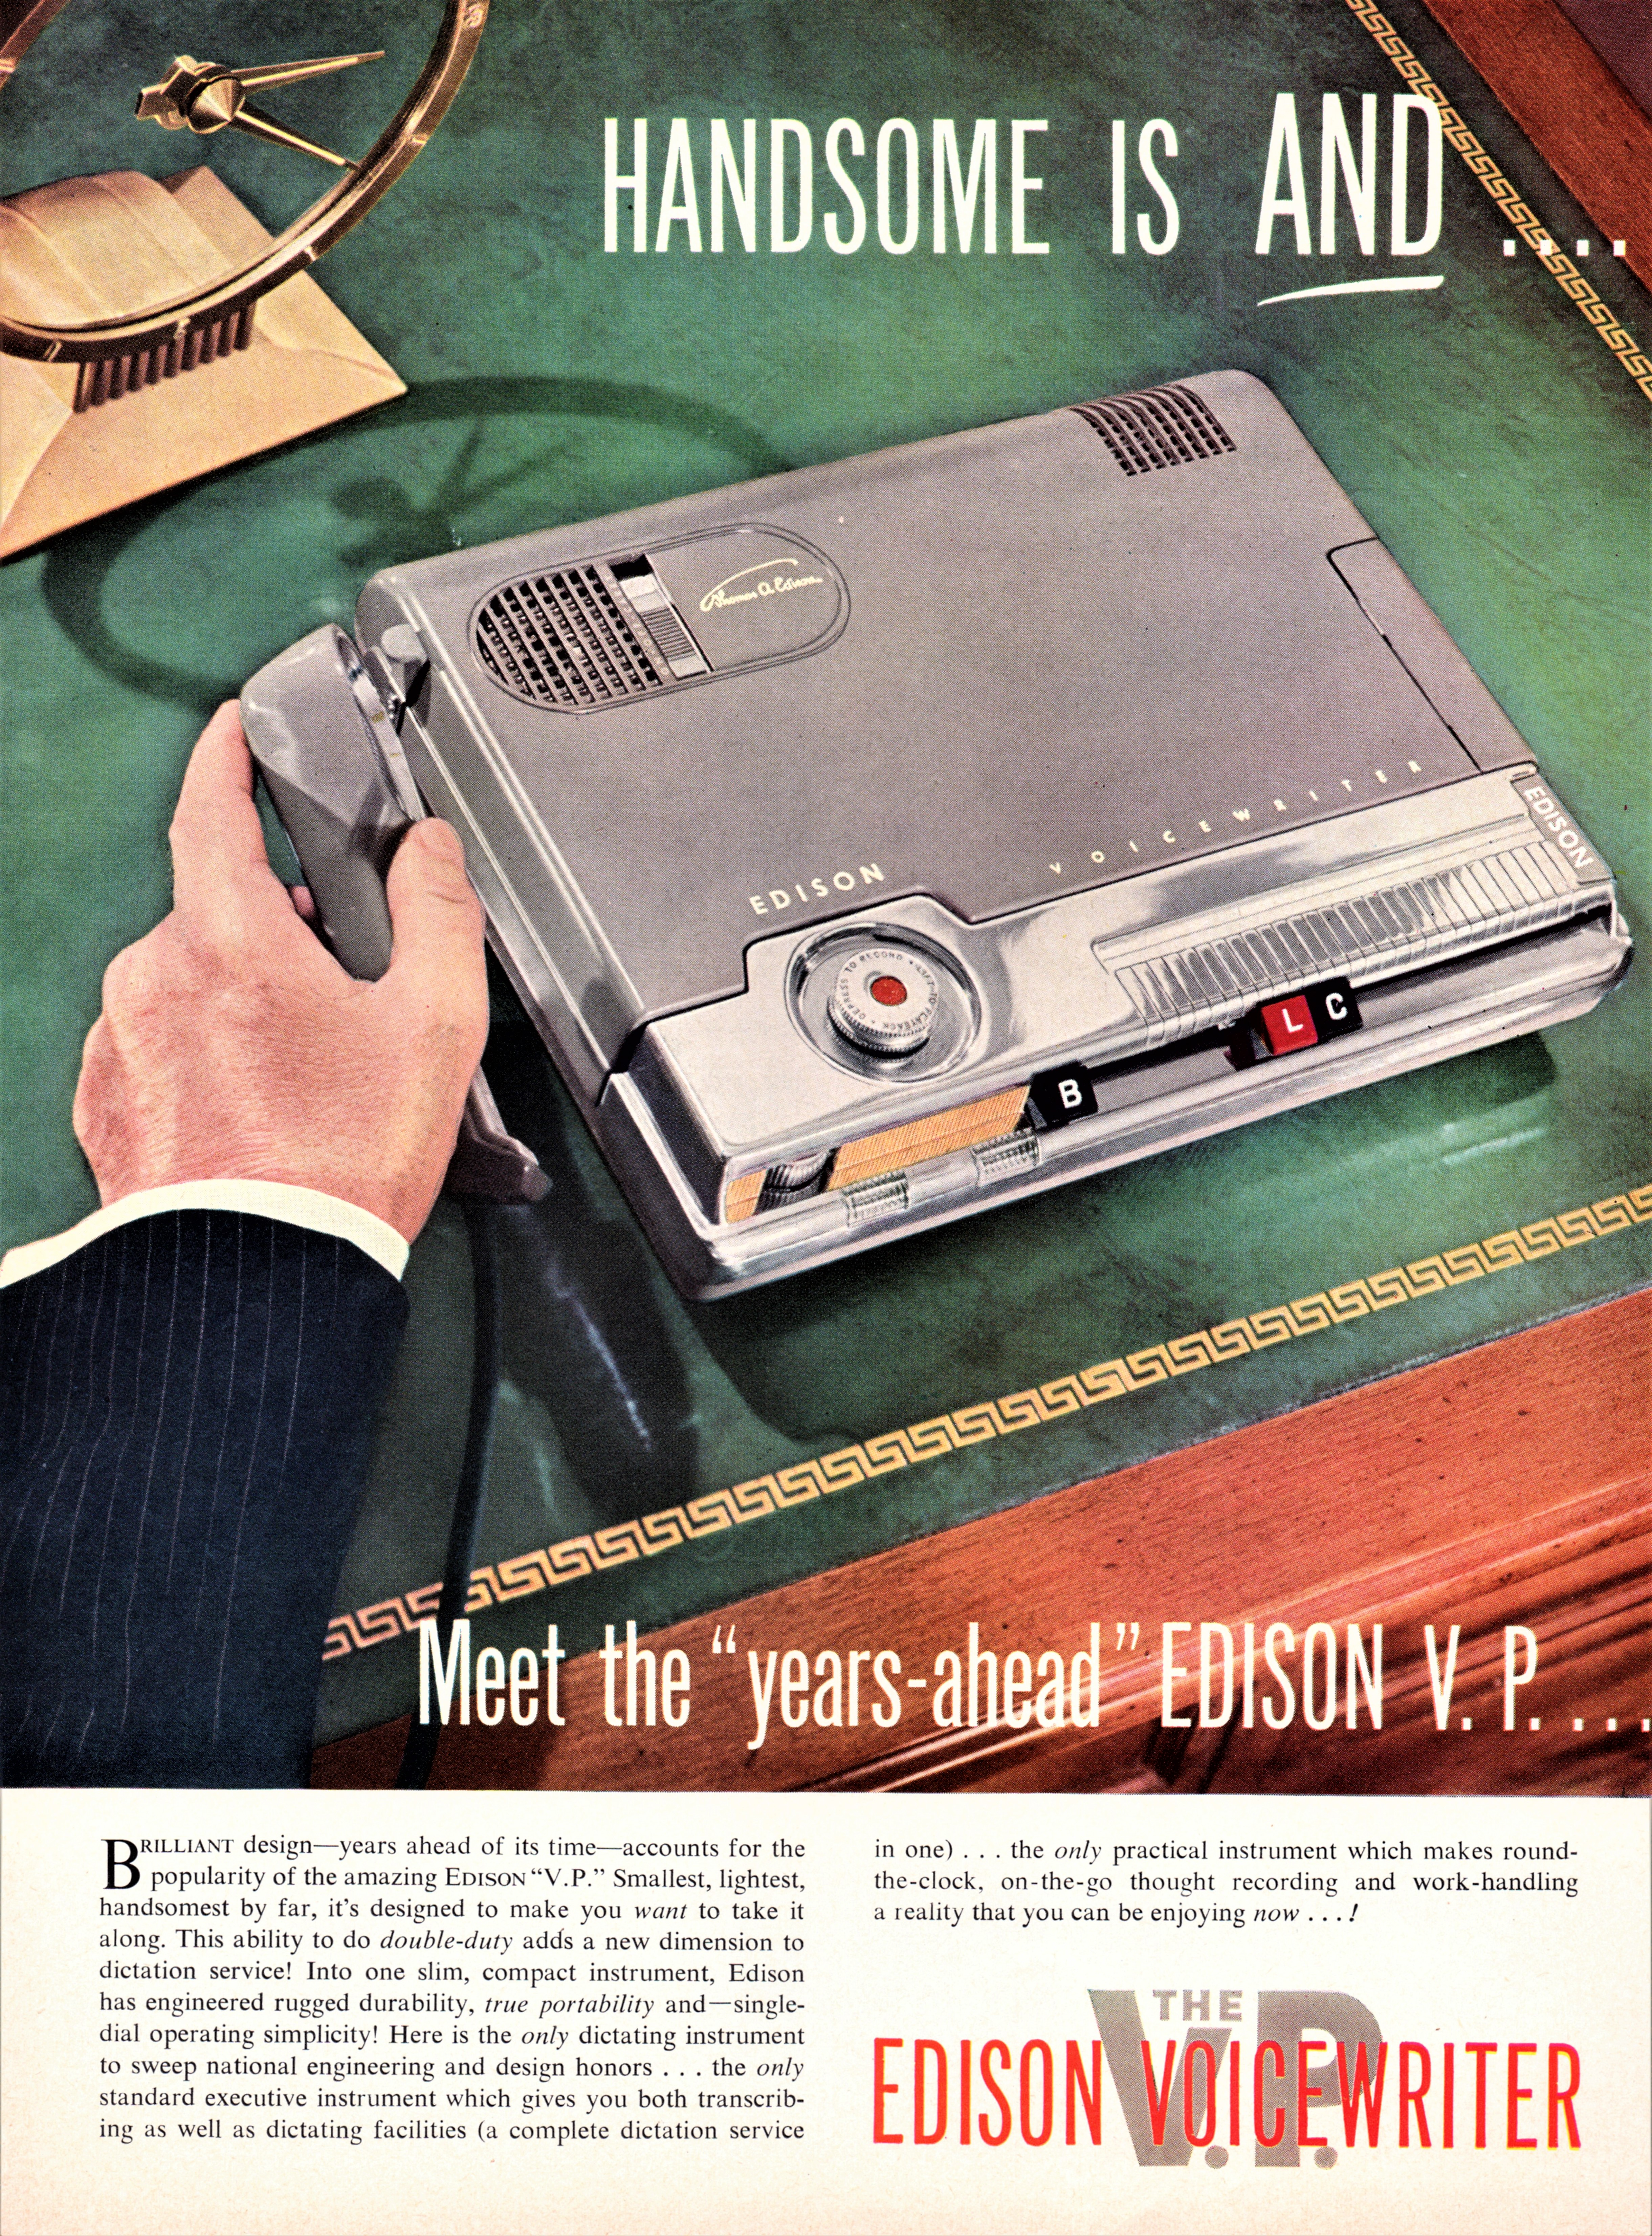 Edison Voicewriter - published in Business Week - March 20, 1954